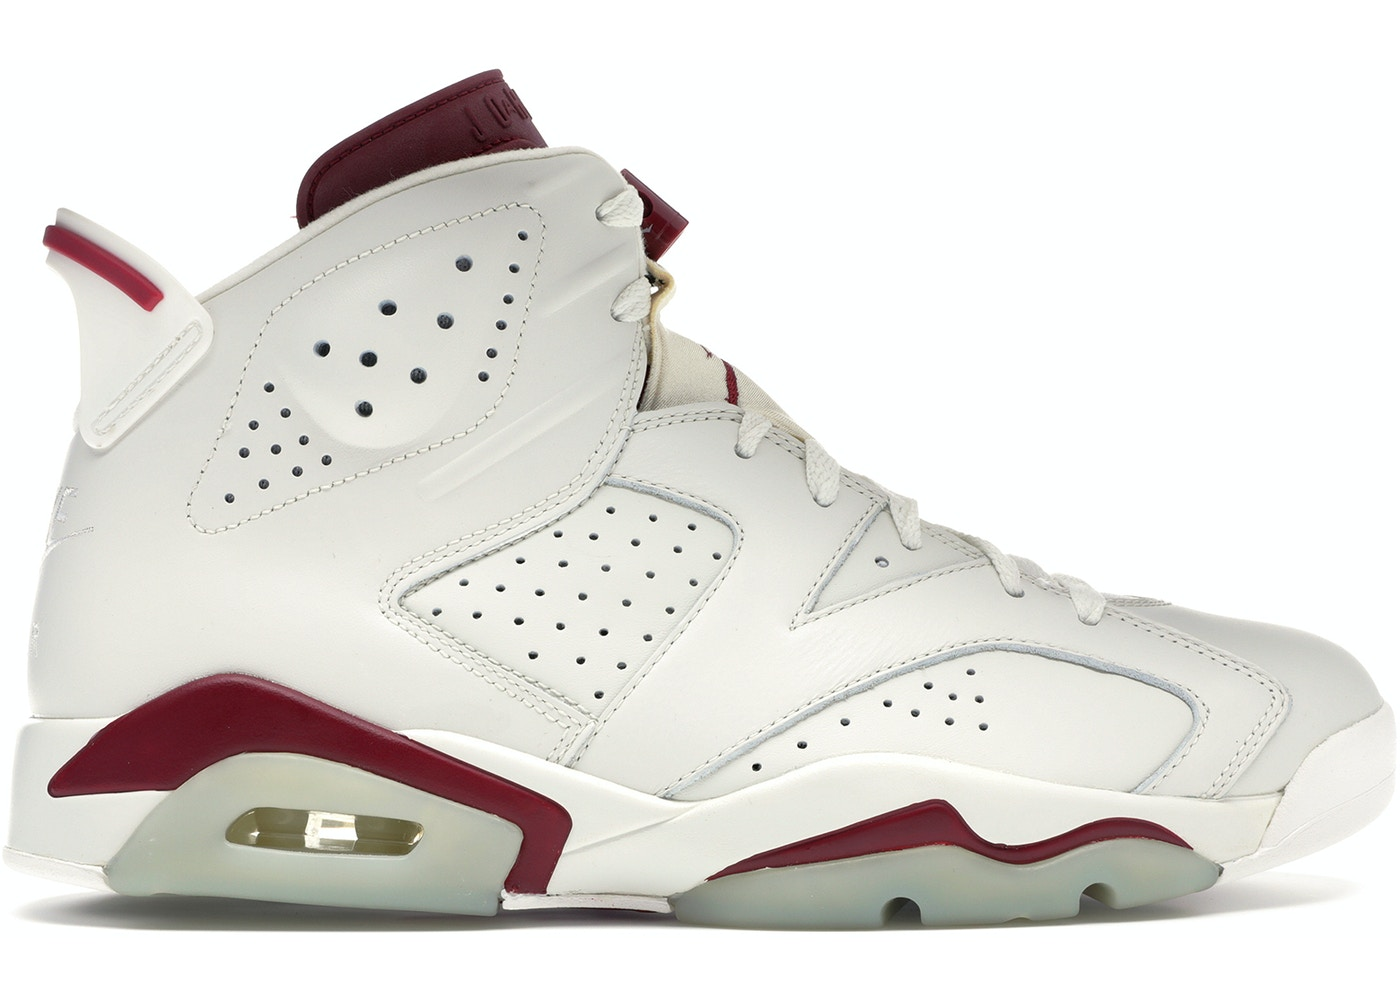 outlet store a6029 a4762 Jordan 6 Retro Maroon (2015) - 384664-116